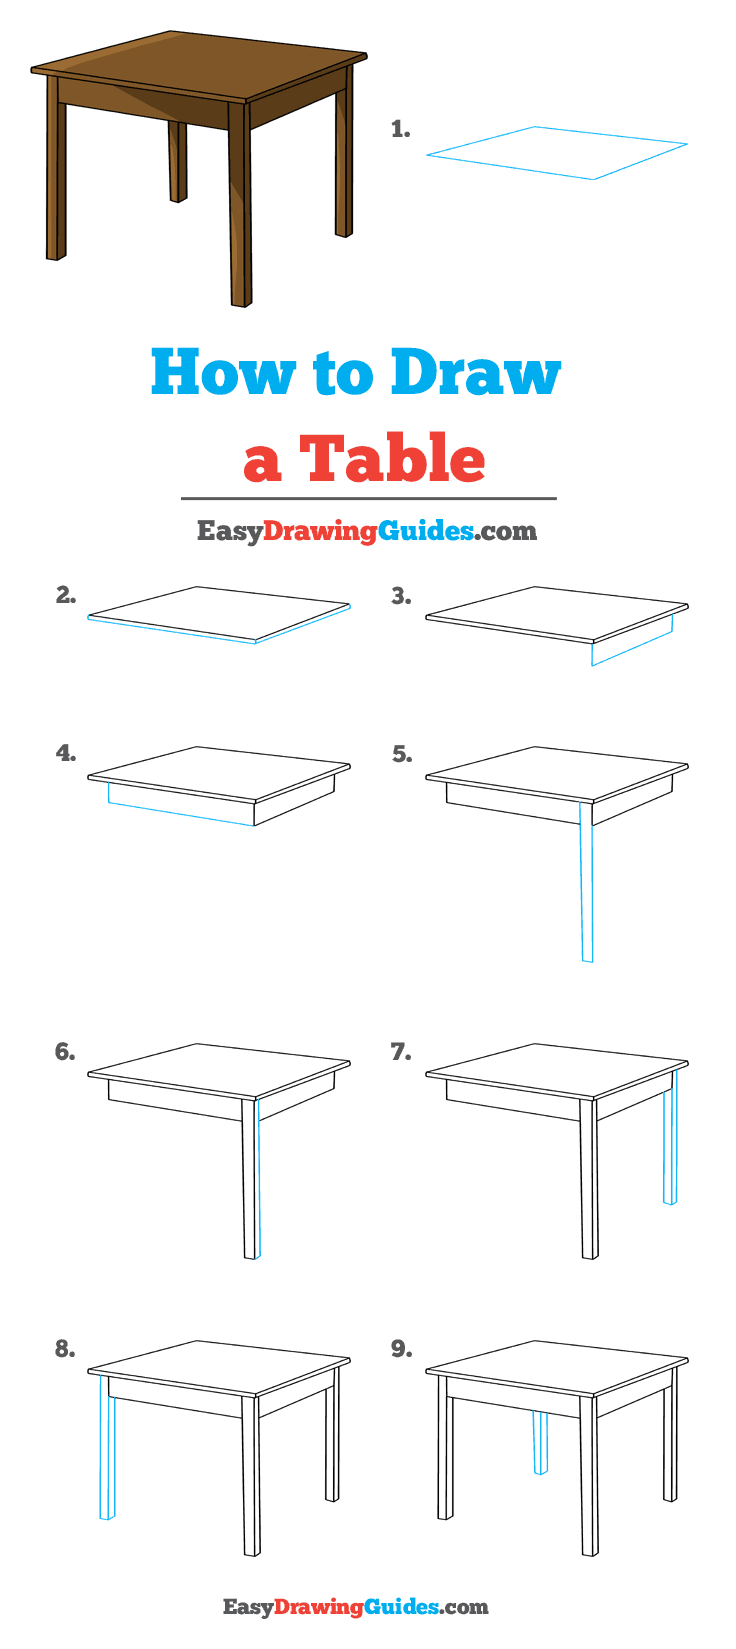 How to Draw Table